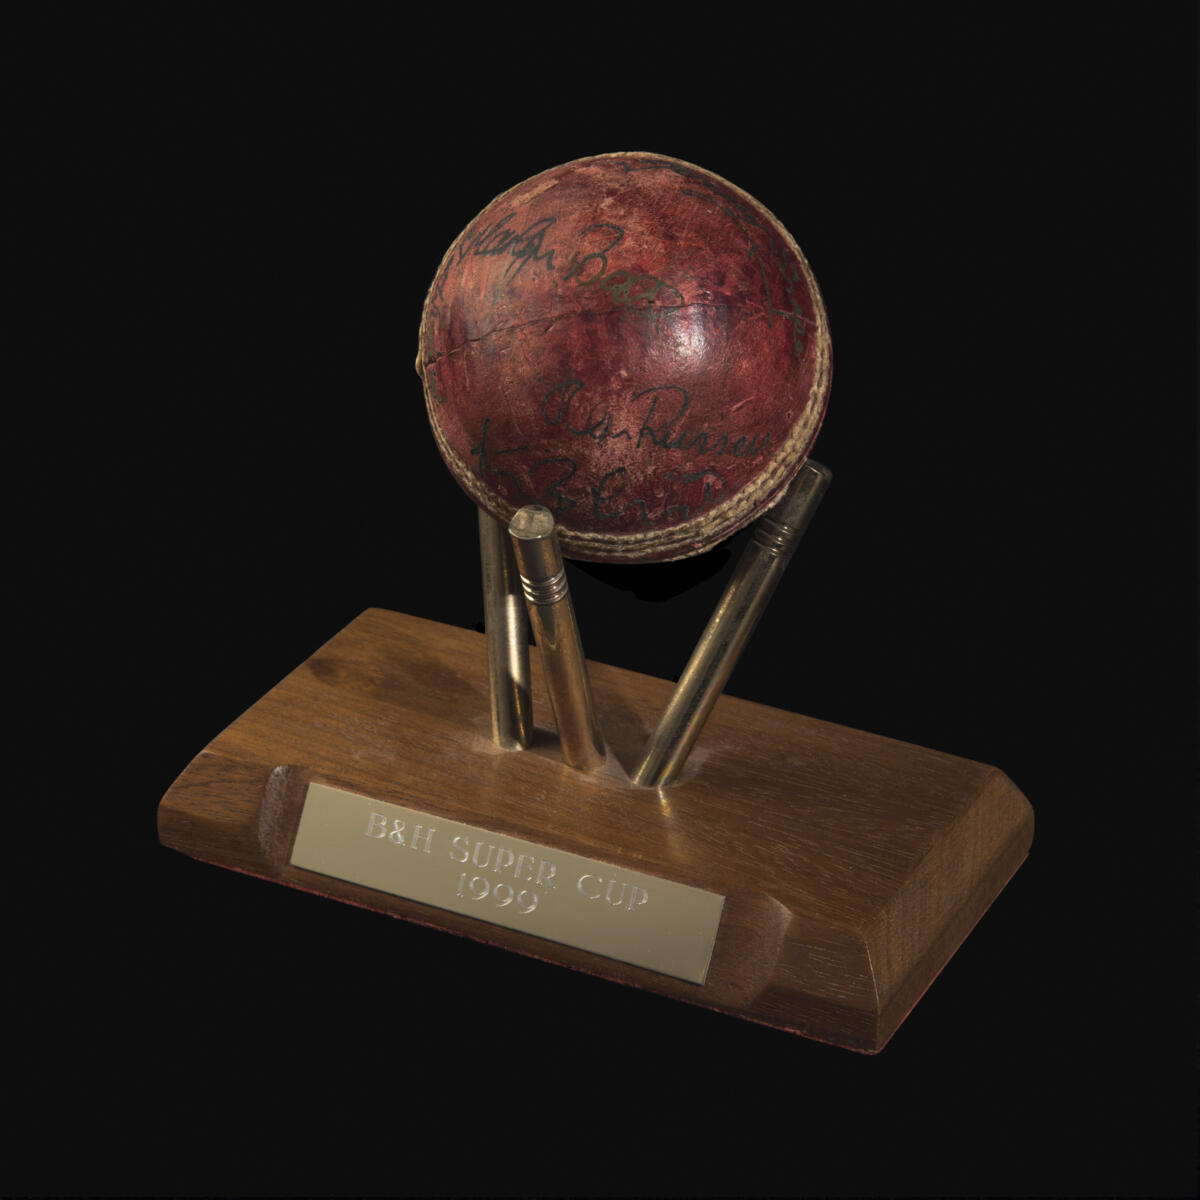 Ball used in the Benson & Hedges Super Cup Final at Lord's 1 August 1999